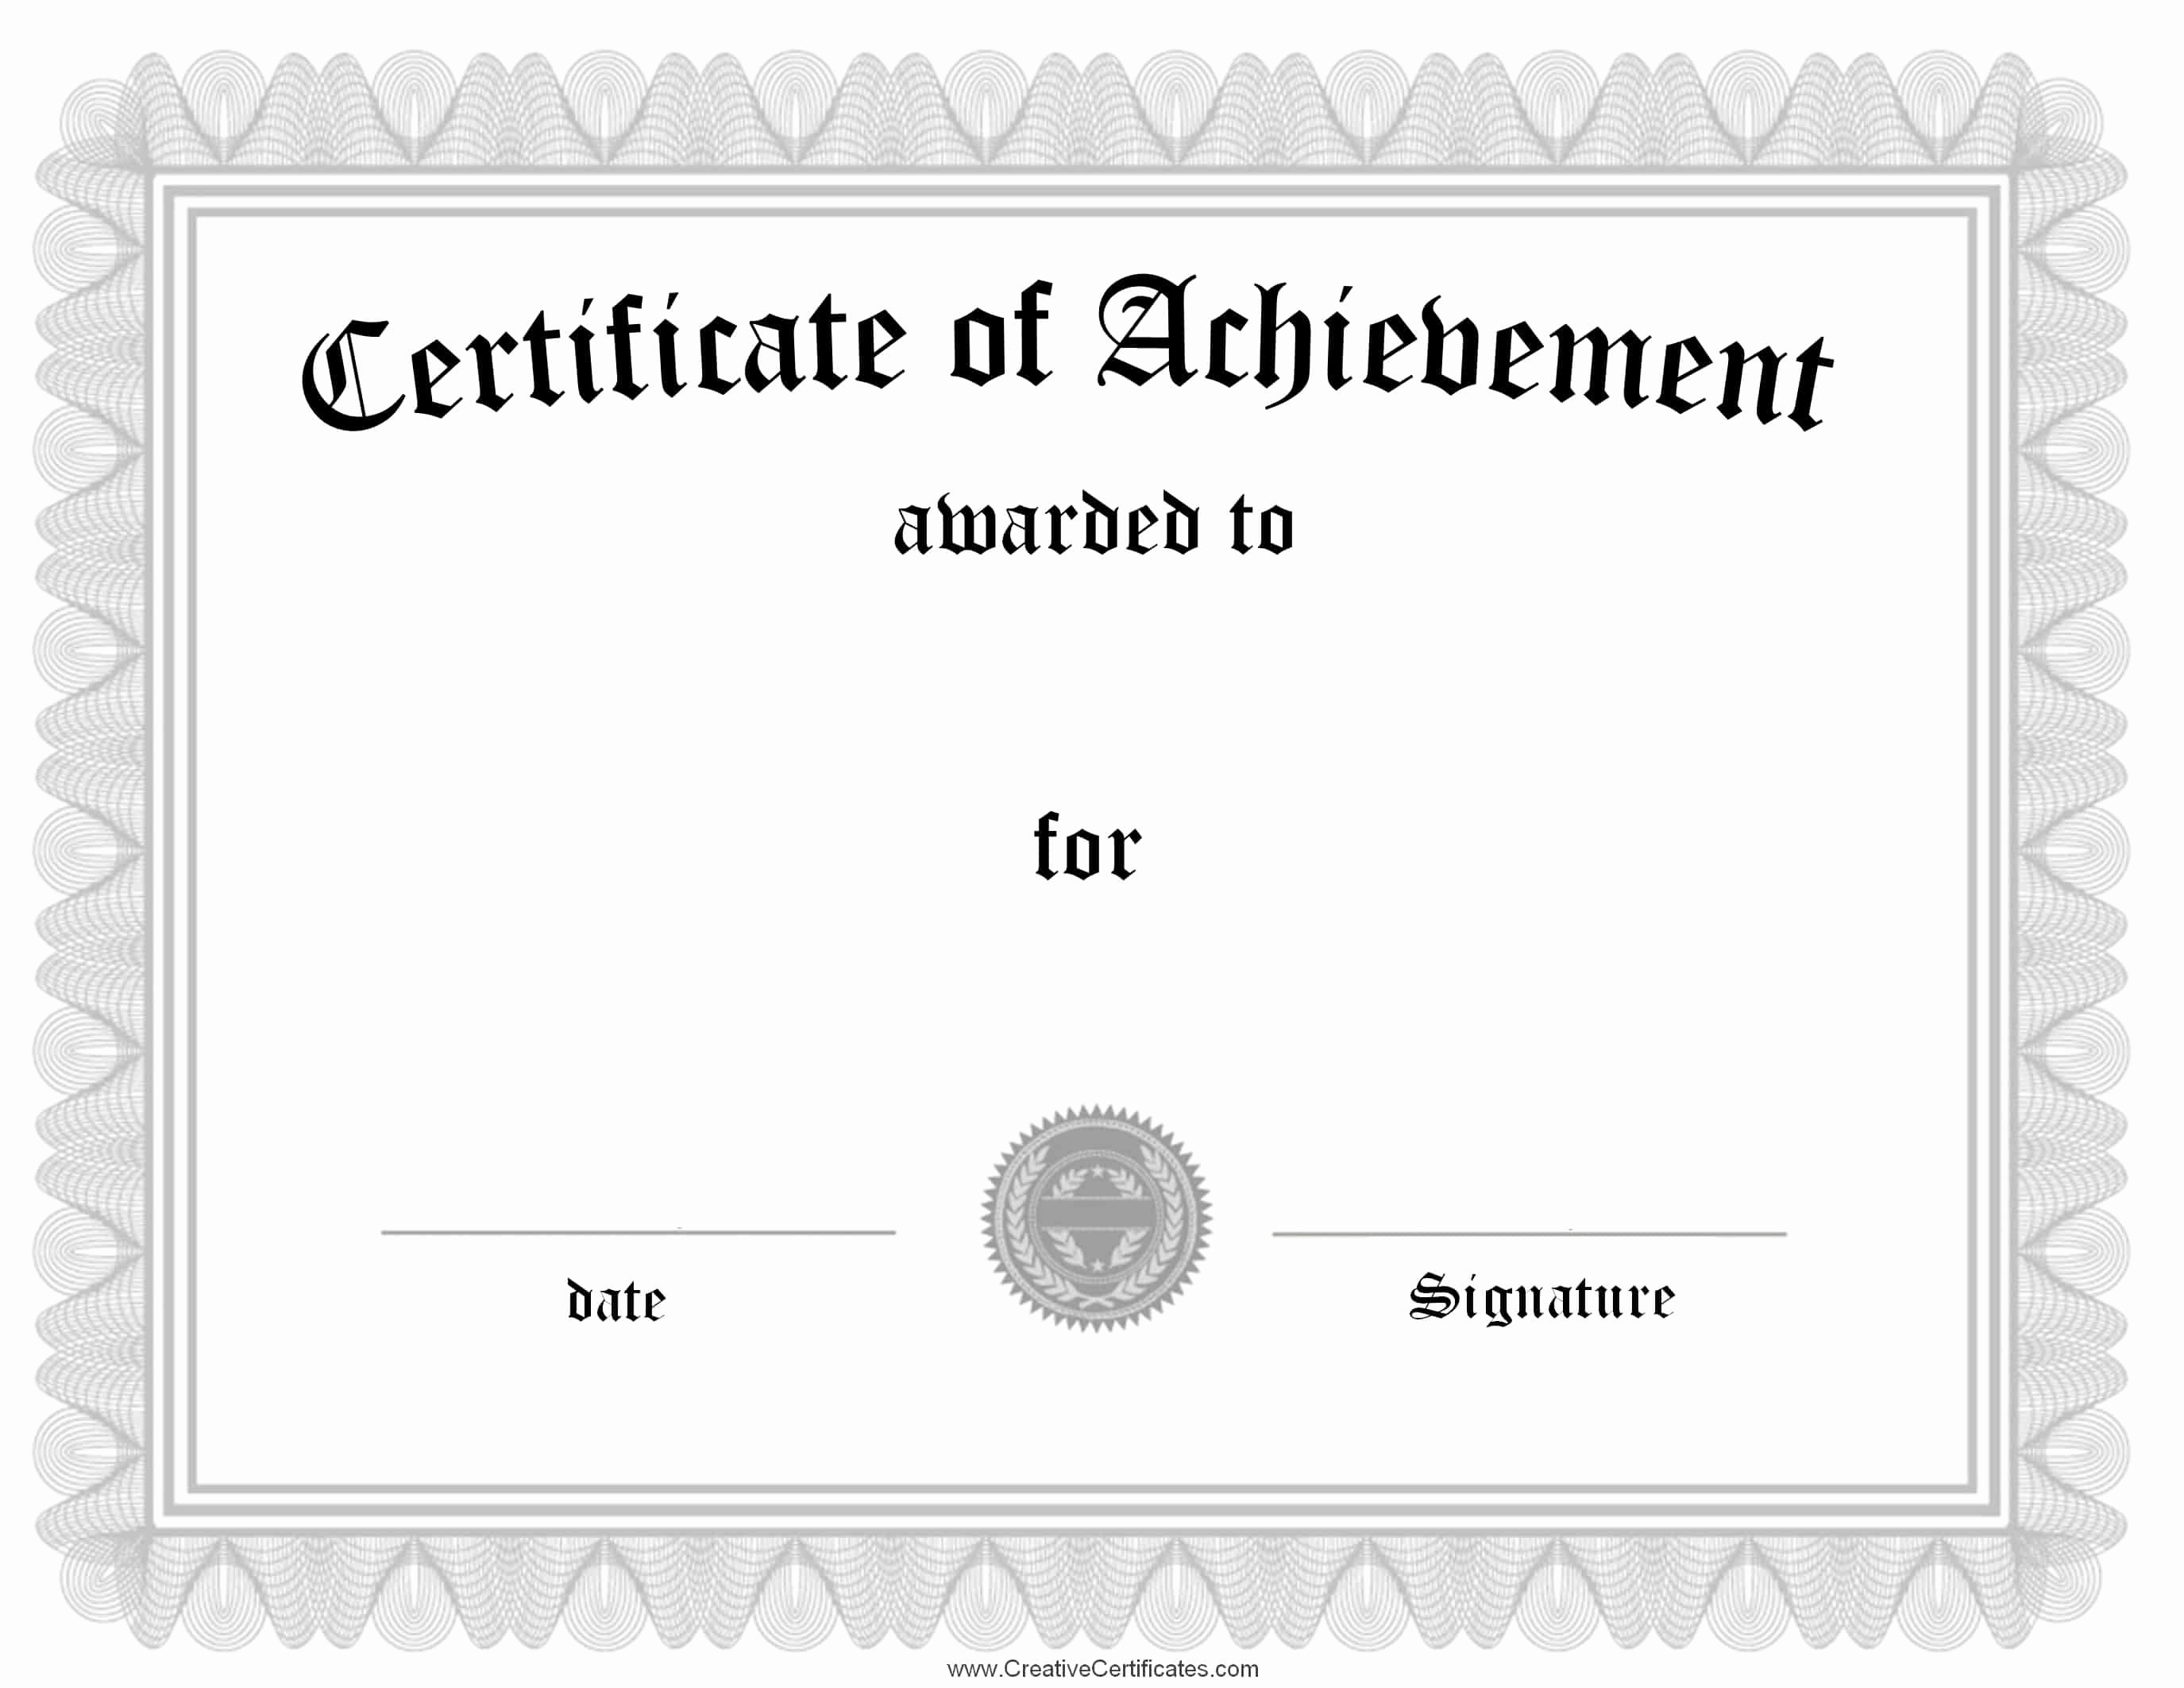 Certificate Of Achievement Unique Free Customizable Certificate Of Achievement